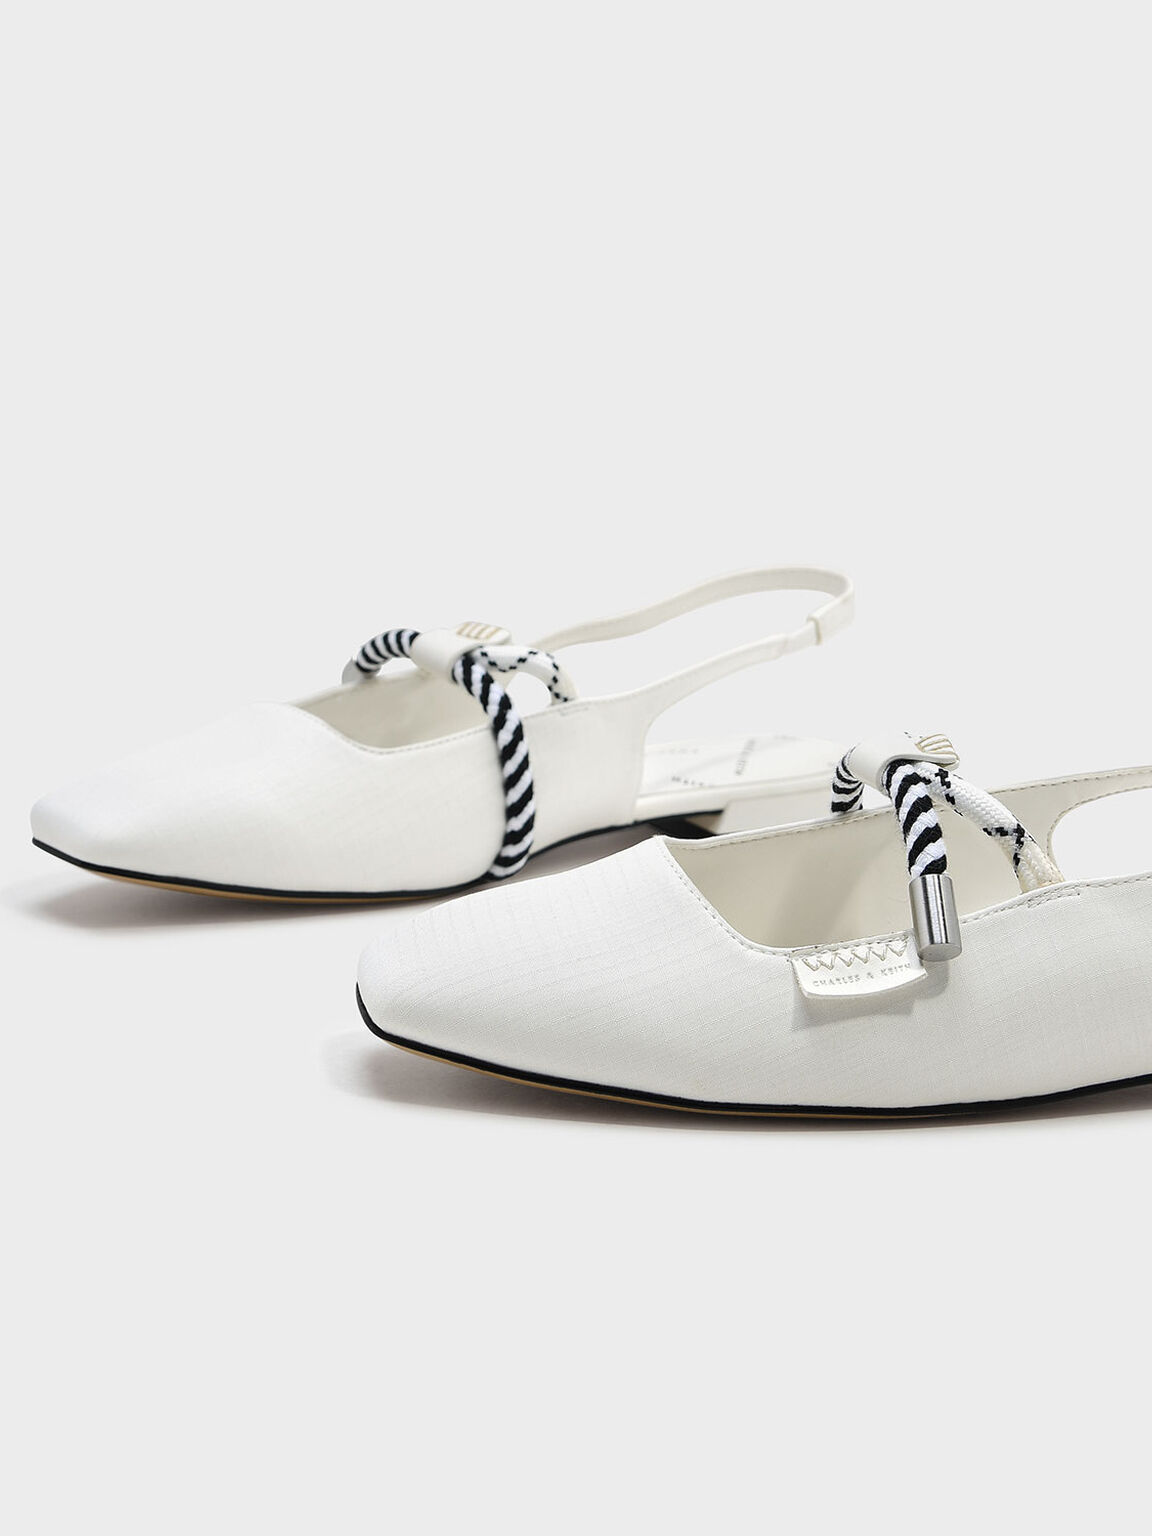 Rope Detail Slingback Flats, White, hi-res